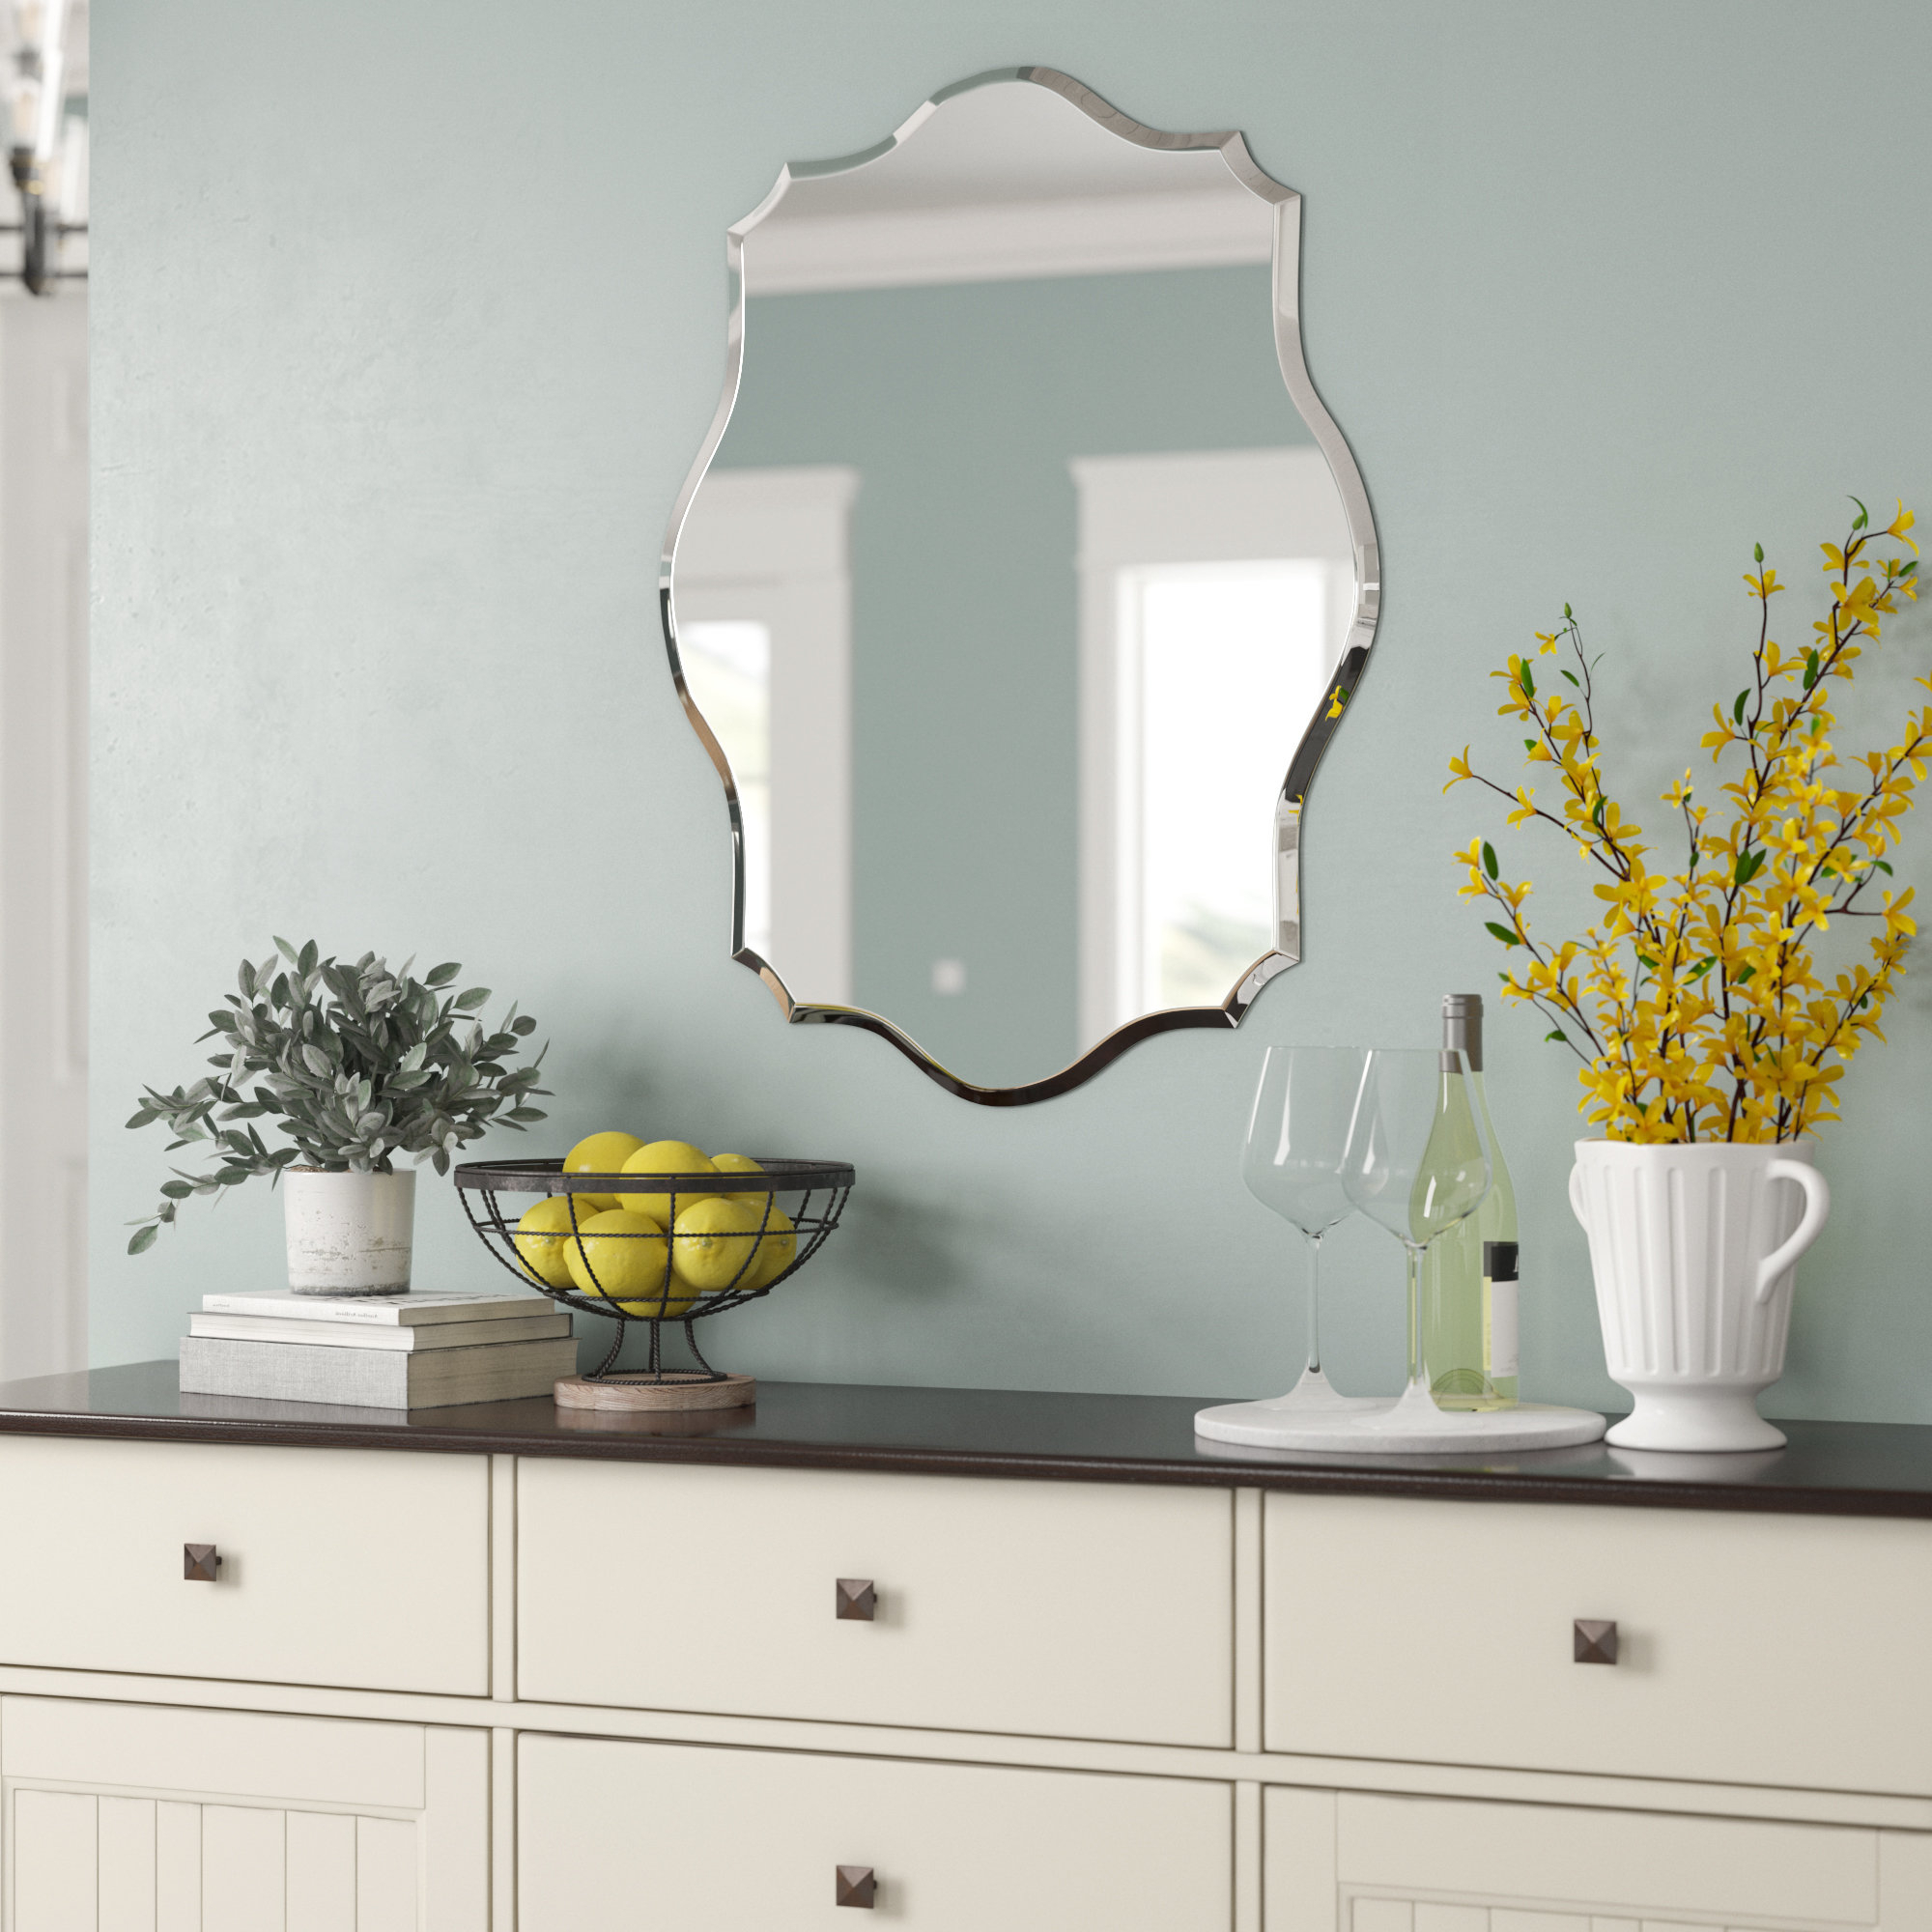 2020 Needville Modern & Contemporary Accent Mirrors Regarding Guidinha Modern & Contemporary Accent Mirror (View 2 of 20)